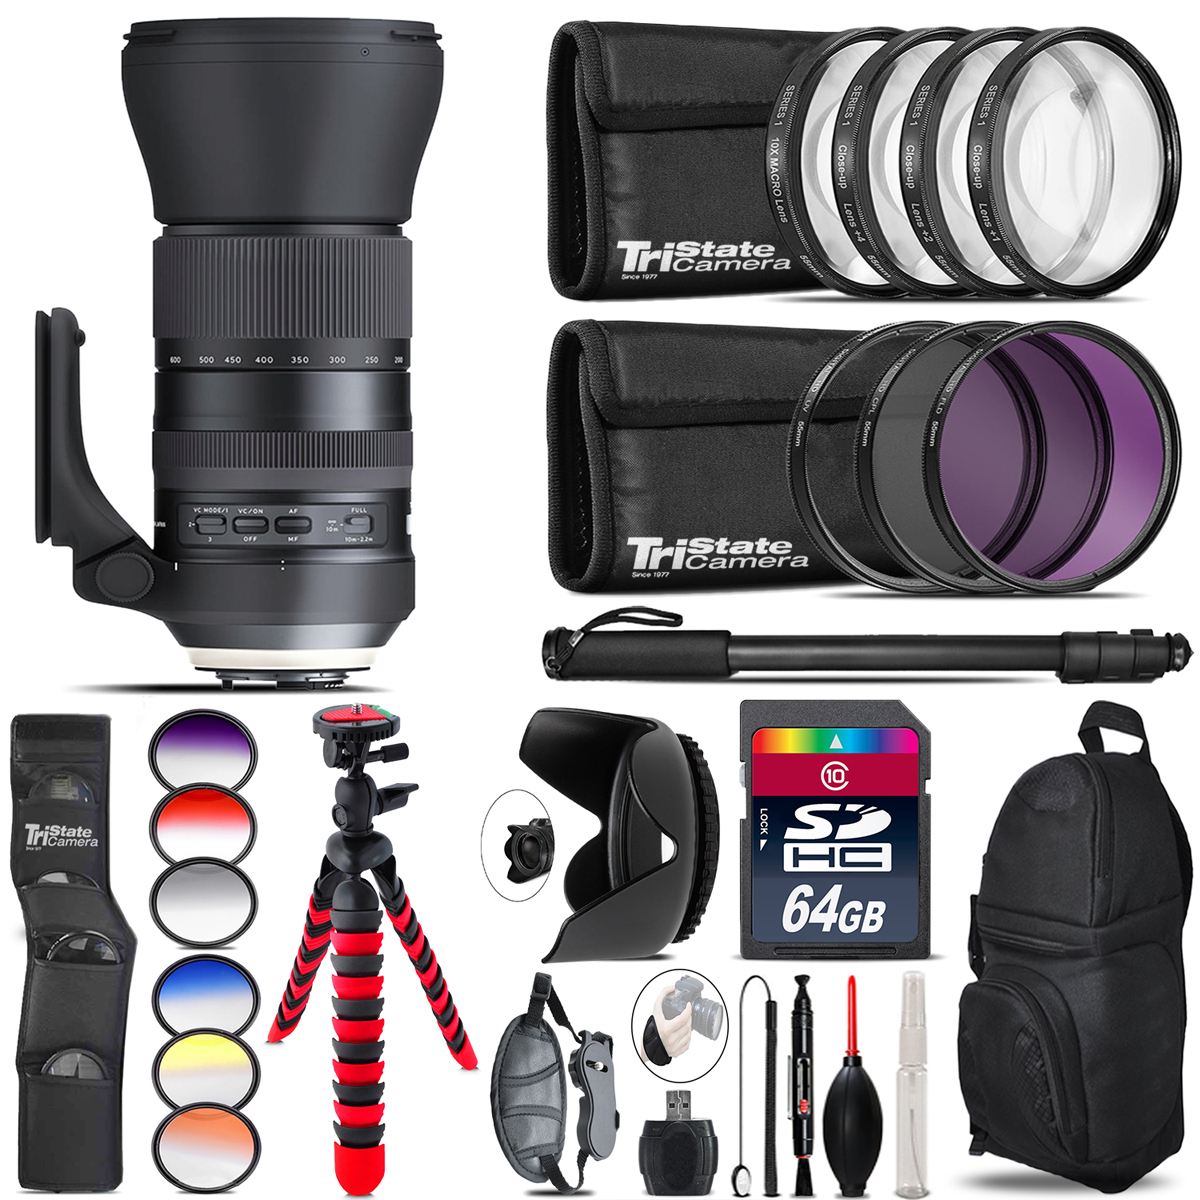 Tamron 150-600mm G2 for Canon + Graduated Color Filter - 64GB Accessory Kit *FREE SHIPPING*